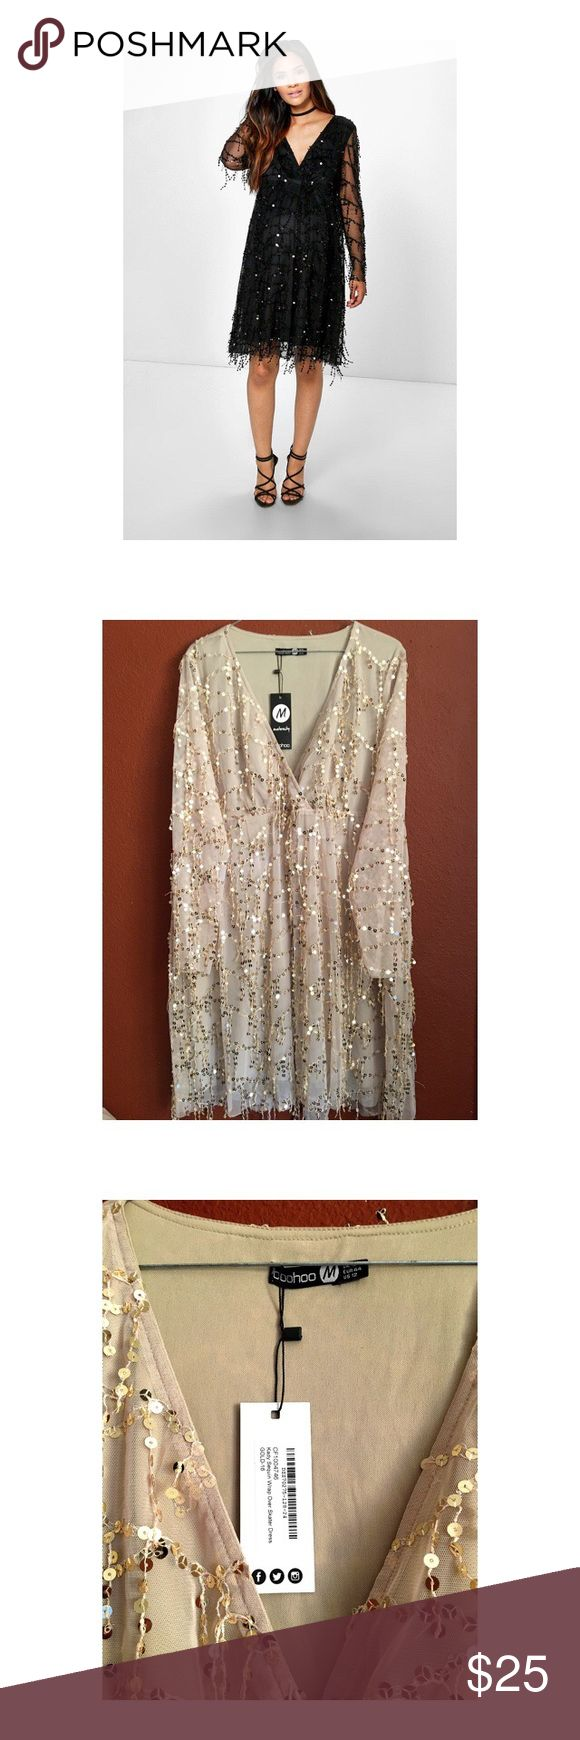 Maternity dress Light brown sequin dress. Prefect for baby shower or any special occasion boohoo maternity Dresses